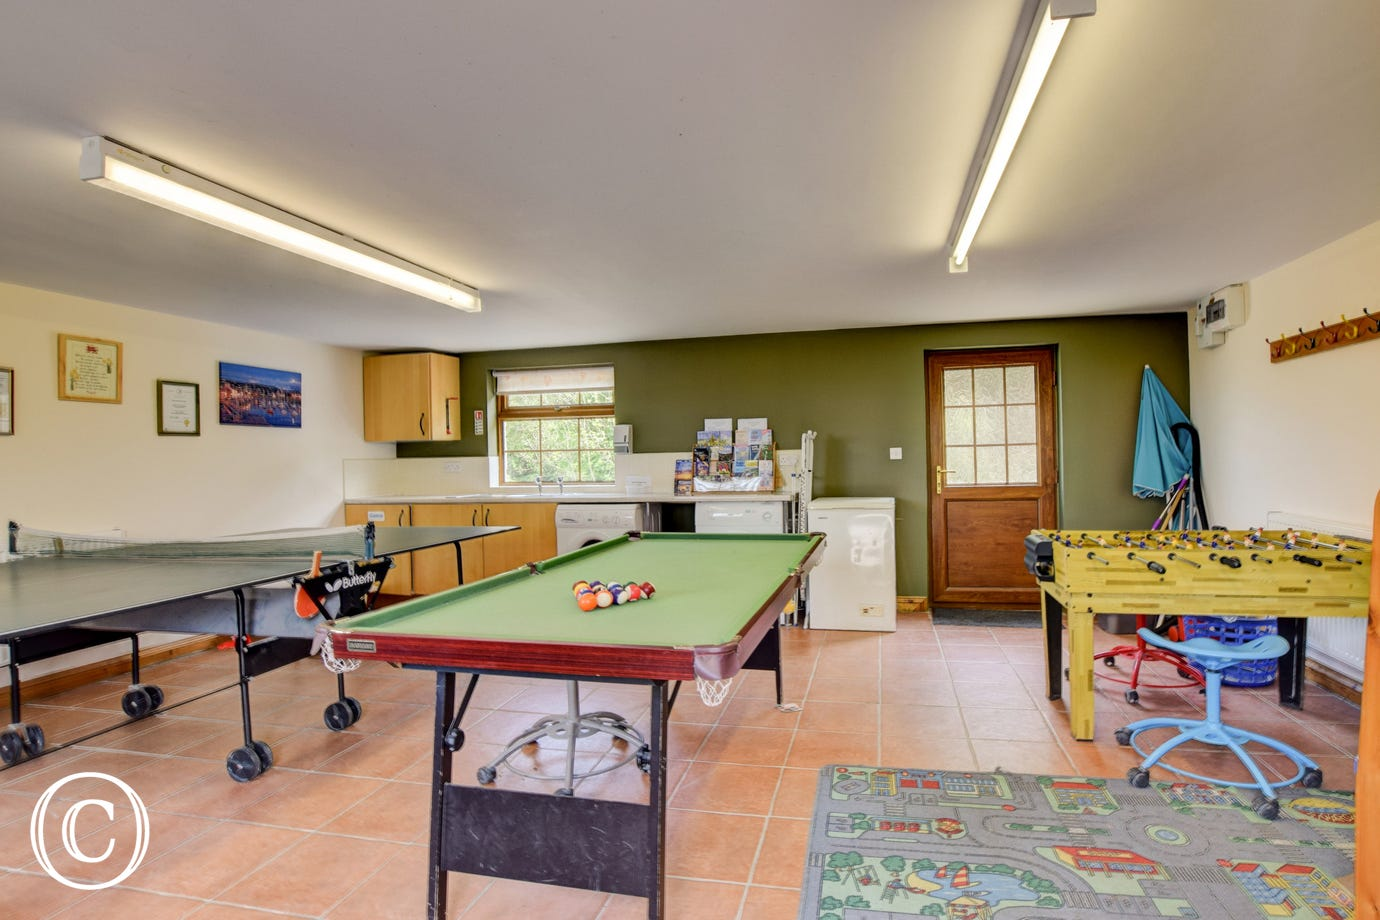 Games room with darts board, snooker table and table tennis facilities